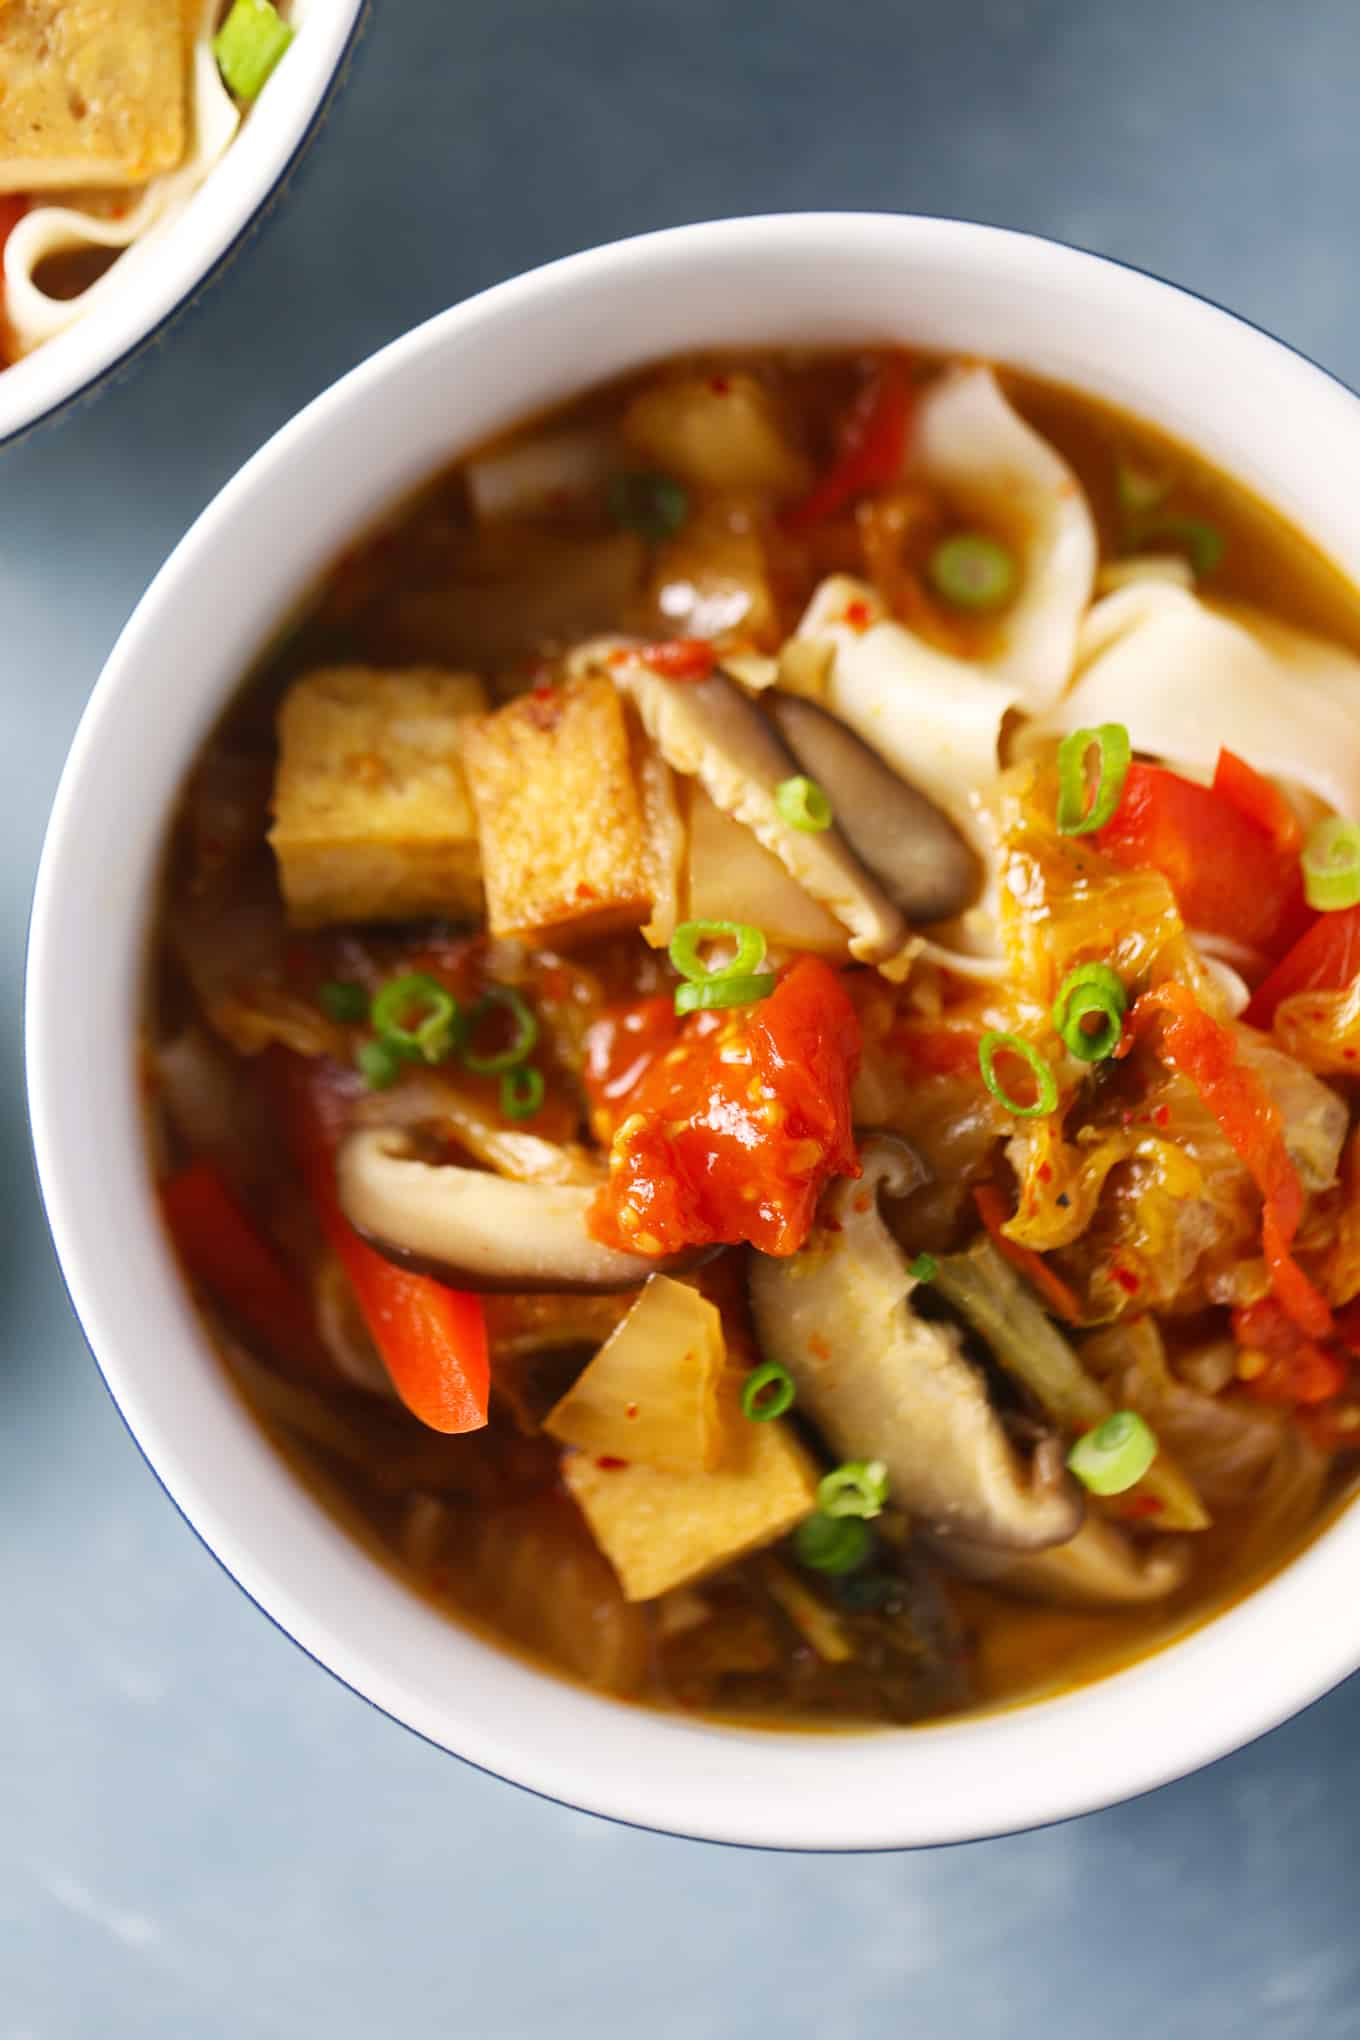 Japanese Mushroom and Tofu Udon Noodle Soup